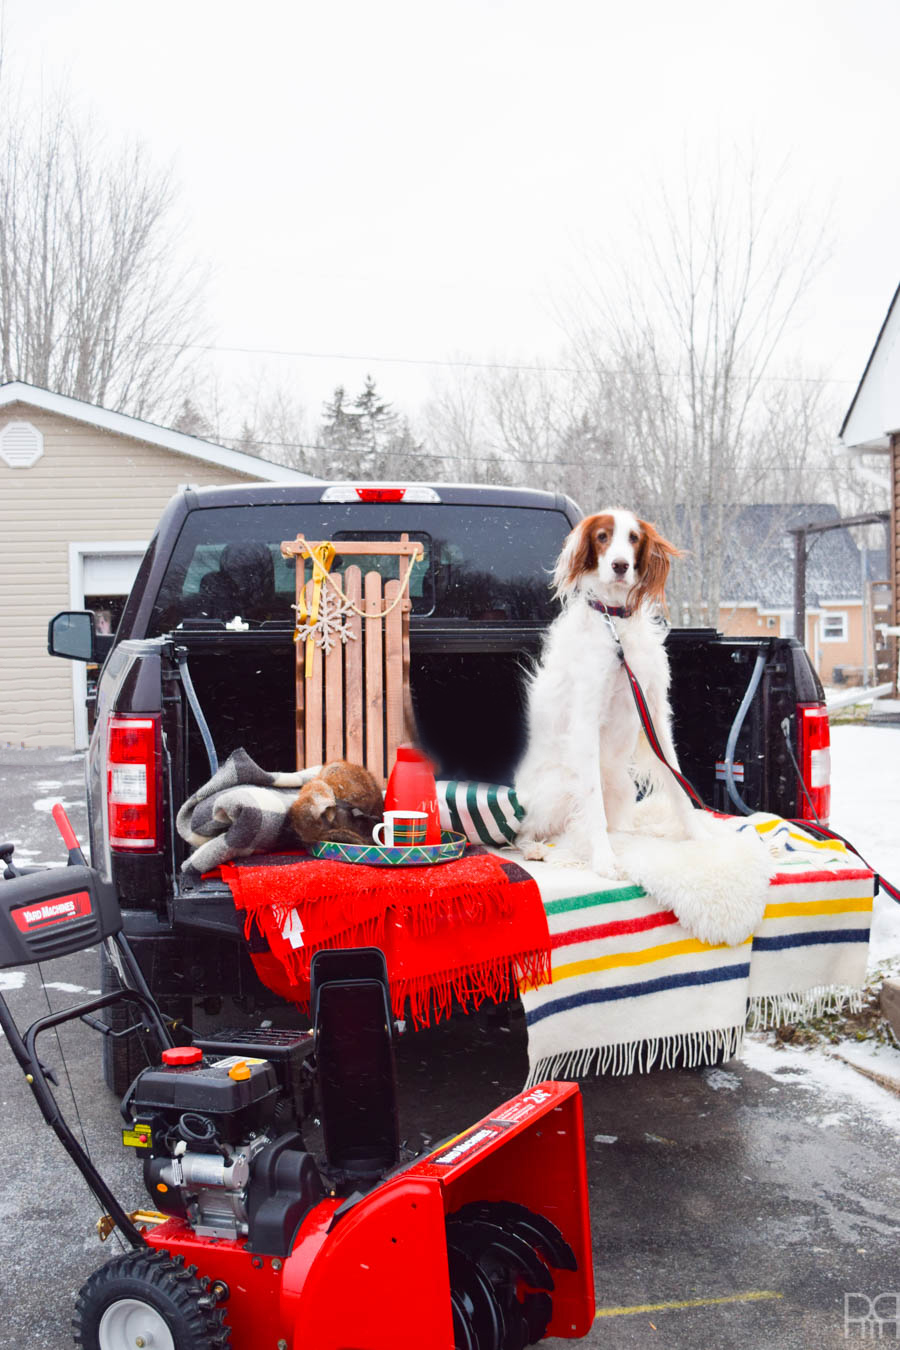 Conquer your winter blues and head outside to enjoy mother nature! You'll get to the business of enjoying the great outdoors so much faster when you've got a snowblower to help power through the ice and snow. Come see what I'm doing to enjoy the Winter